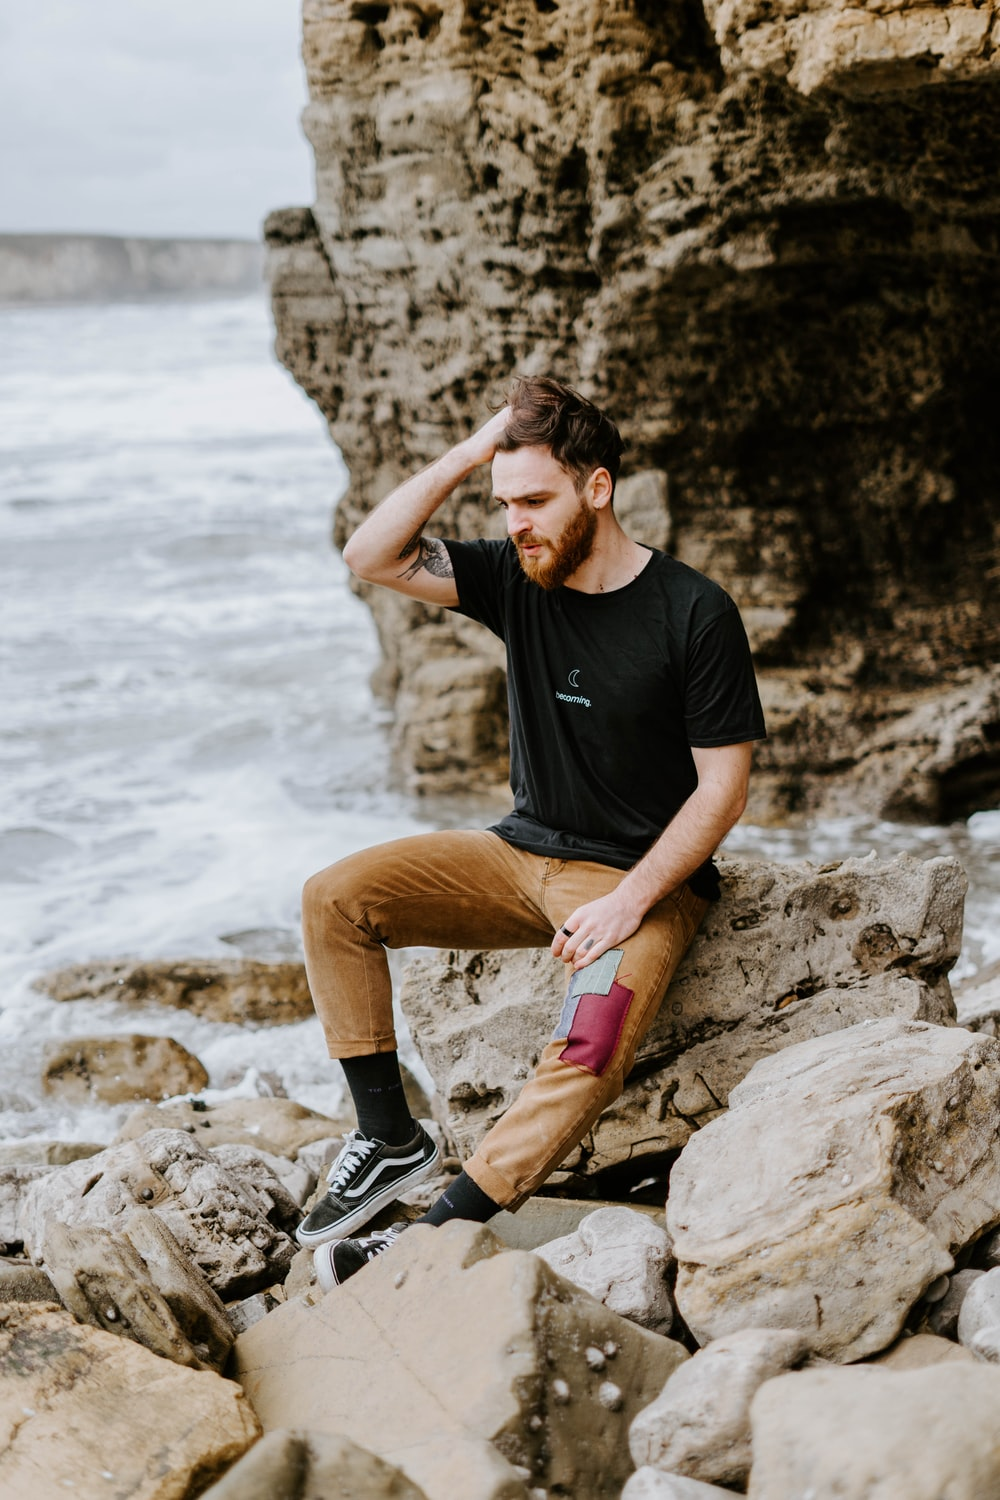 man in black t-shirt and brown shorts sitting on rock near body of water during